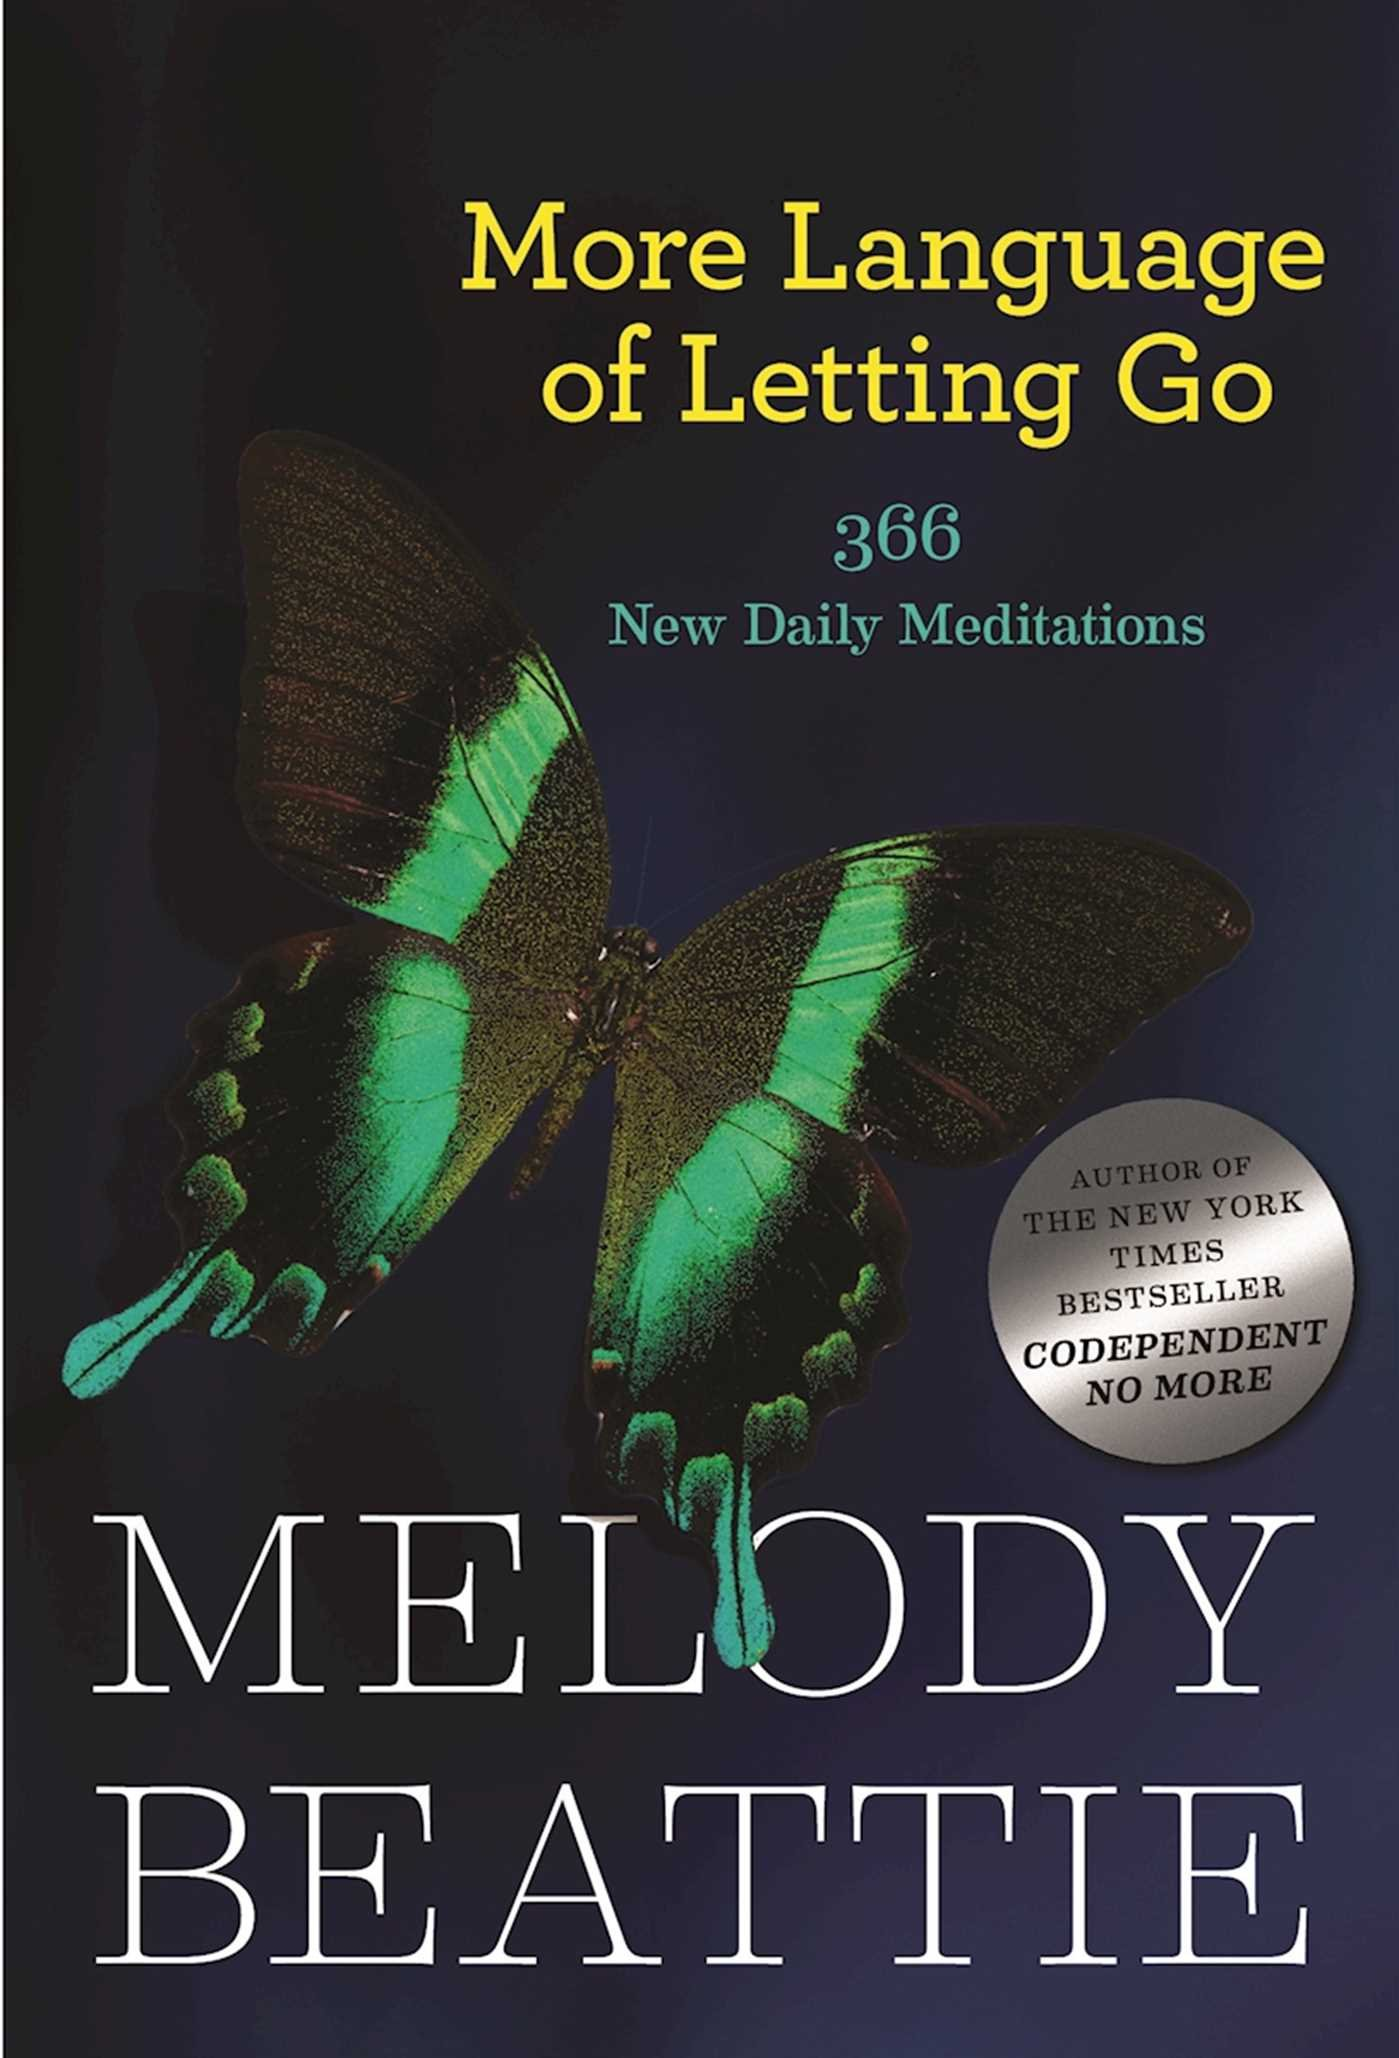 Image OfMore Language Of Letting Go: 366 New Daily Meditations